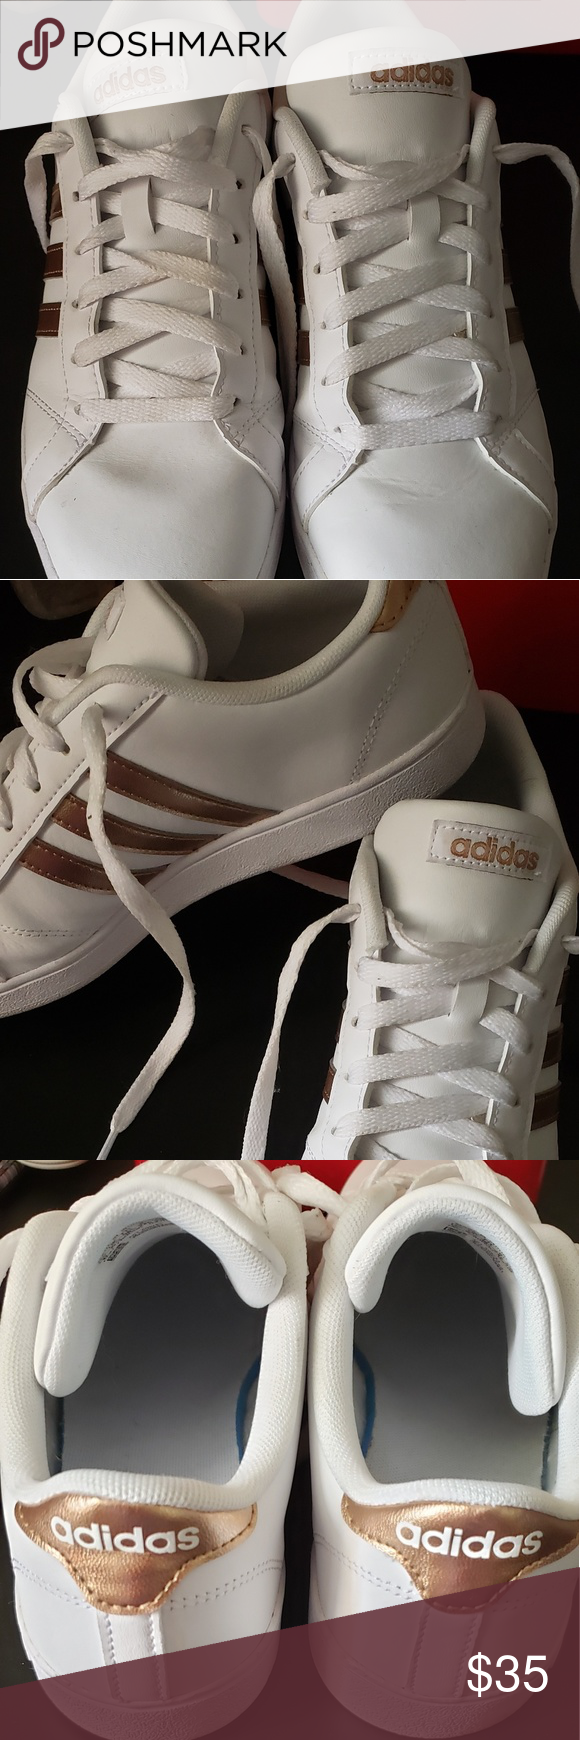 Adidas Baseline Shoes White with rose gold stripes. Size 6